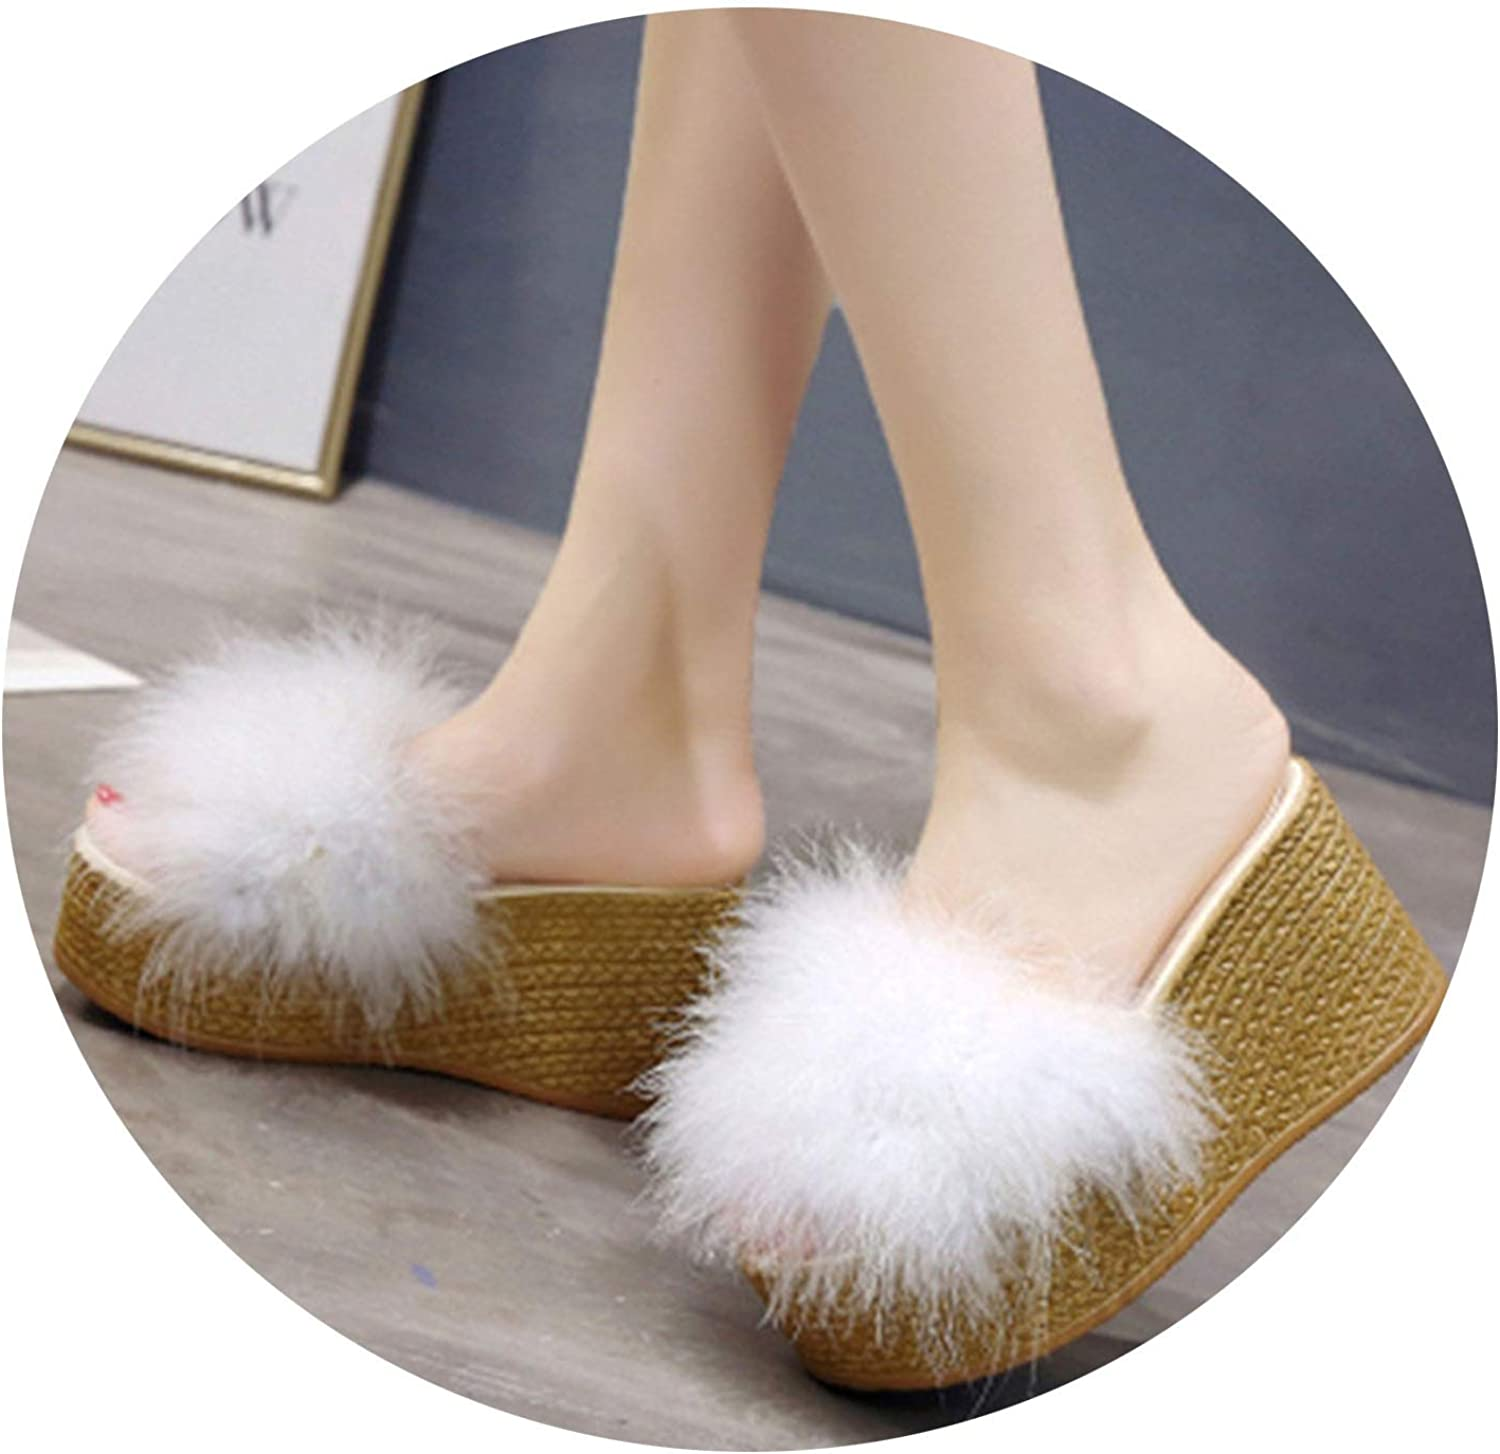 Sunshine-Family Summer Women's Wedge Sandals Feather 9Cm High Heel Platform Open Toes Female Sexy Slipper